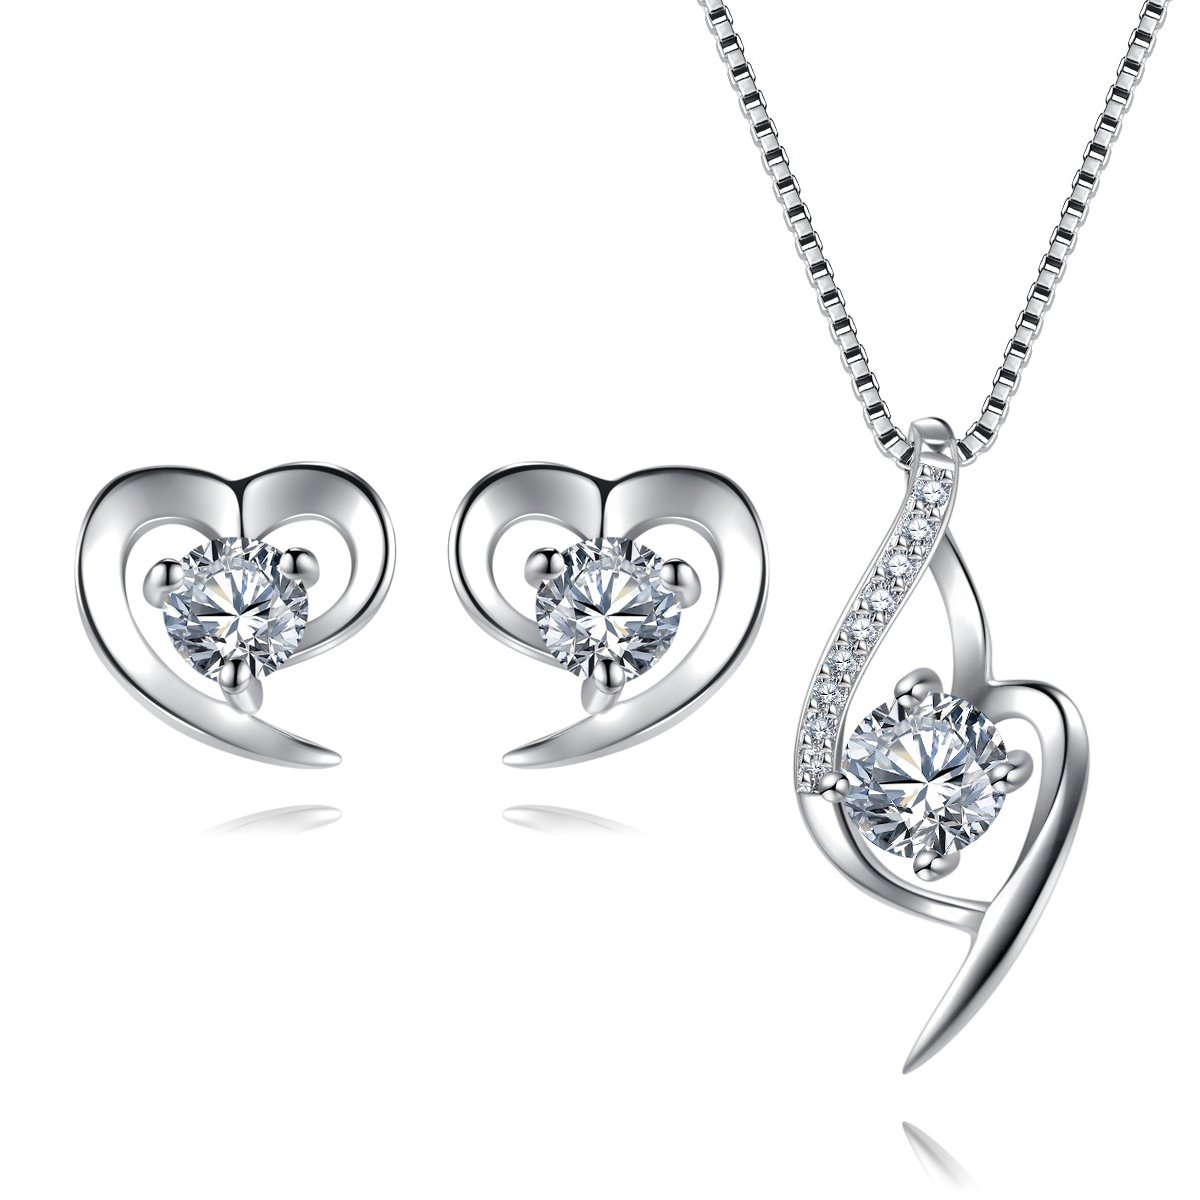 EVERU Sterling Silver Jewelry Sets for Women, Heart Pendant Necklace & Heart Earrings with Sparkle AAA Cubic Zirconia with an Box